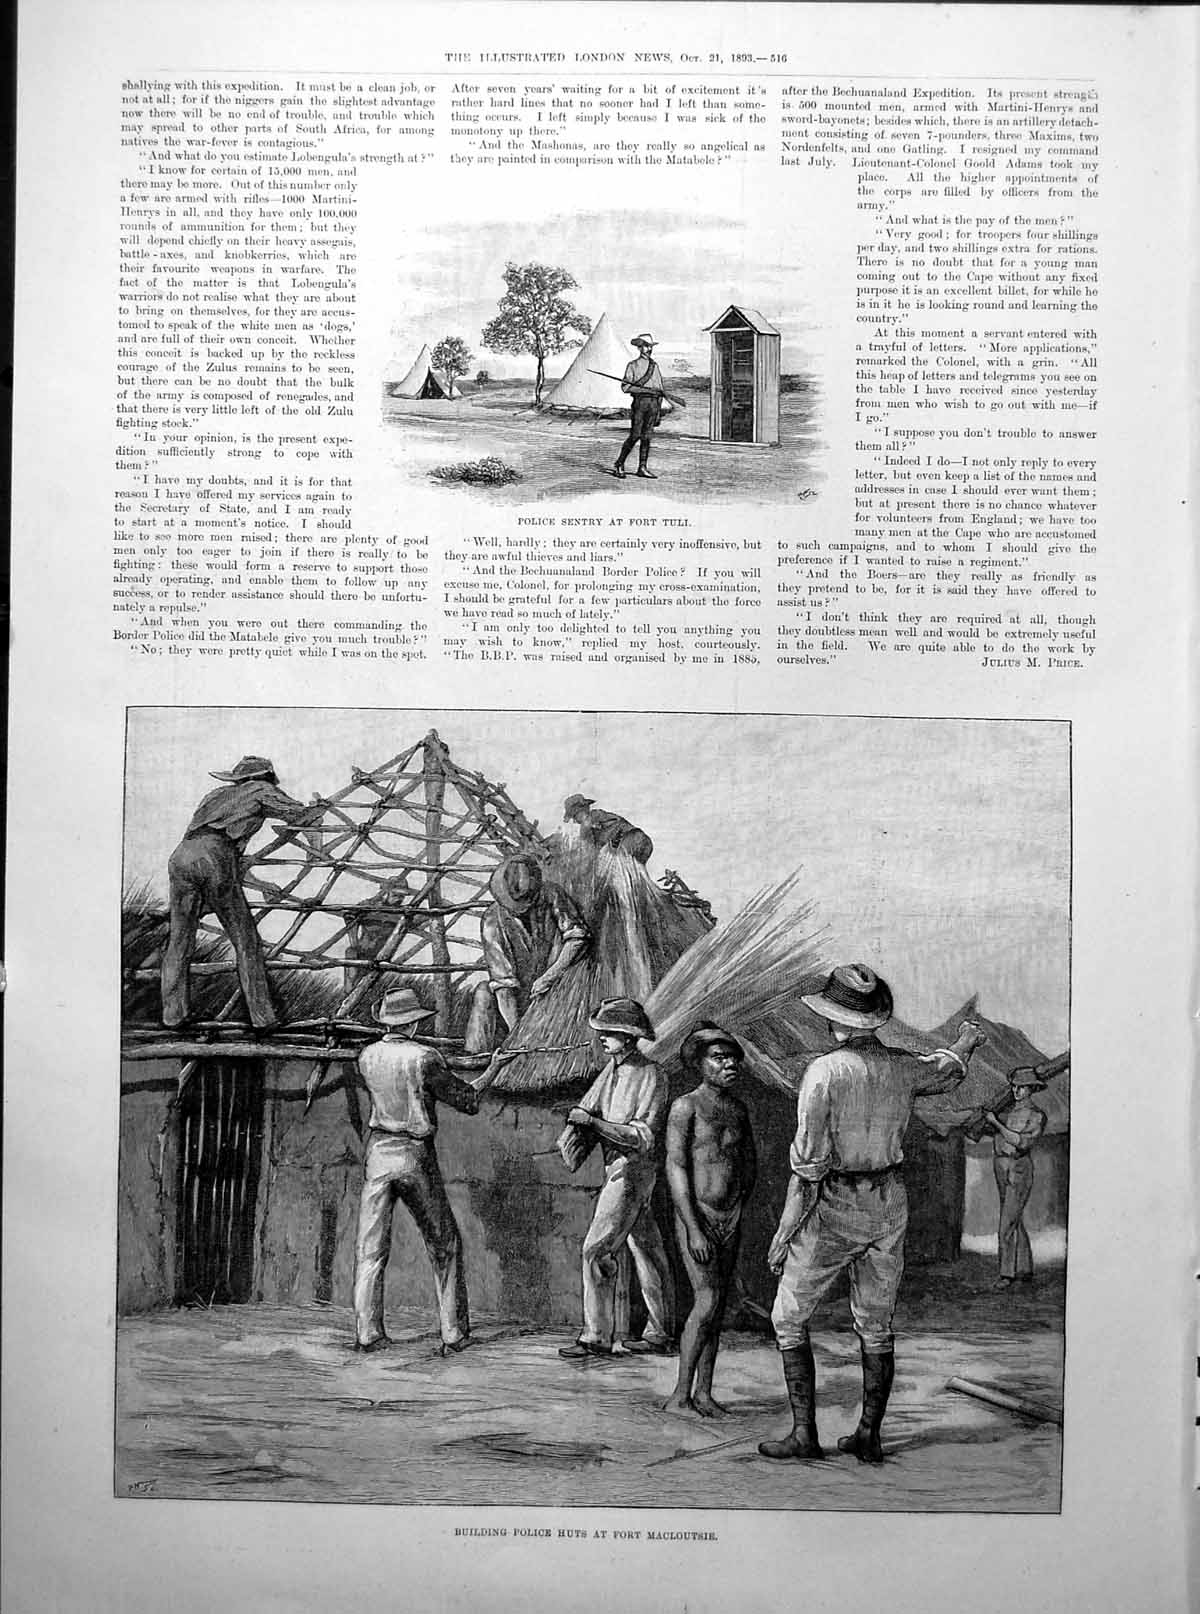 [Print Building Police Huts Fort Macloutsie South Africa Map 1893 516Rp203 Old Original]